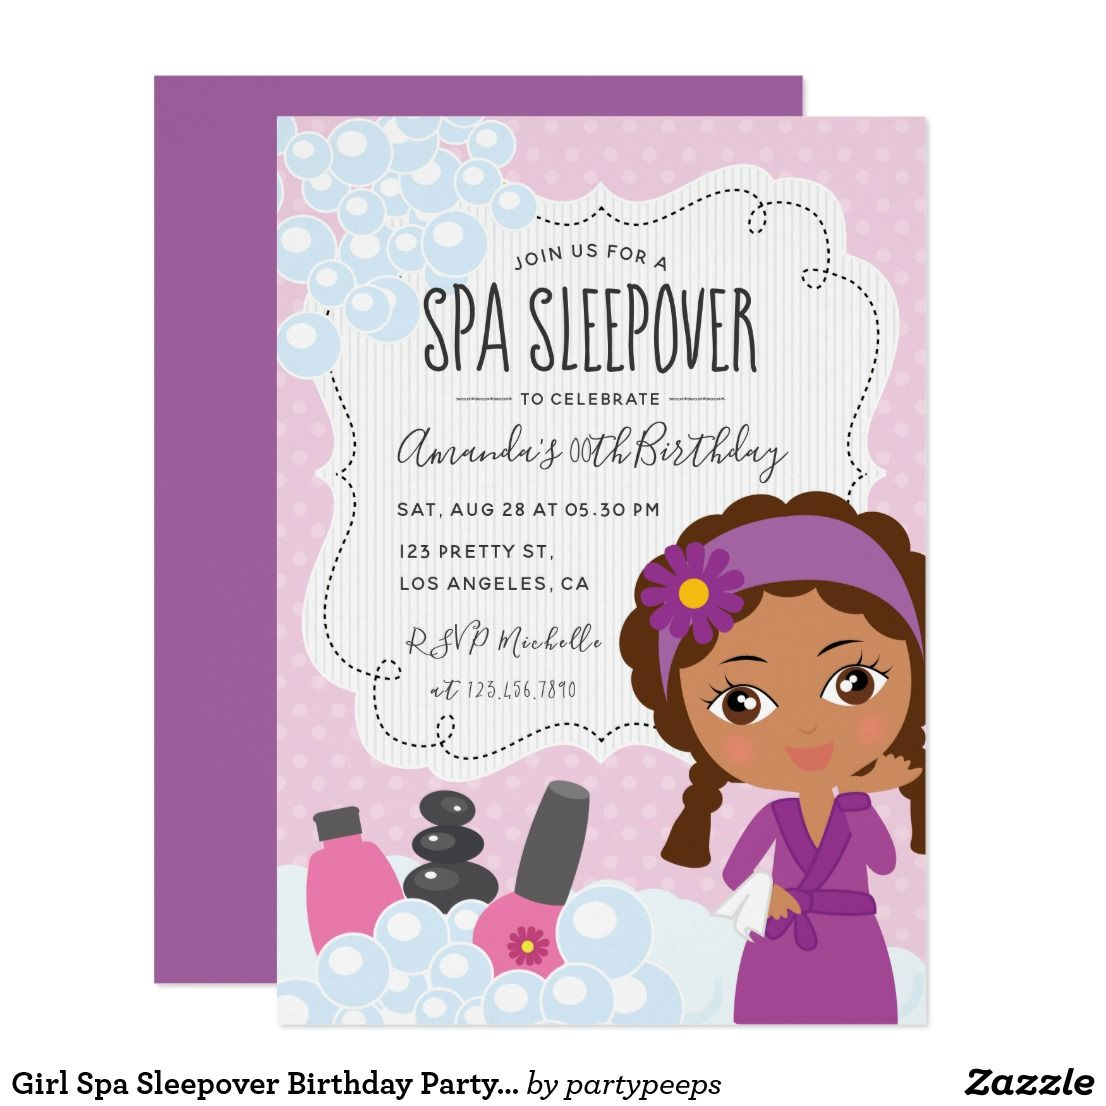 Girl Spa Sleepover Birthday Party Invitation Cool Girly African American Invitations Customizable To Your Event Specifics